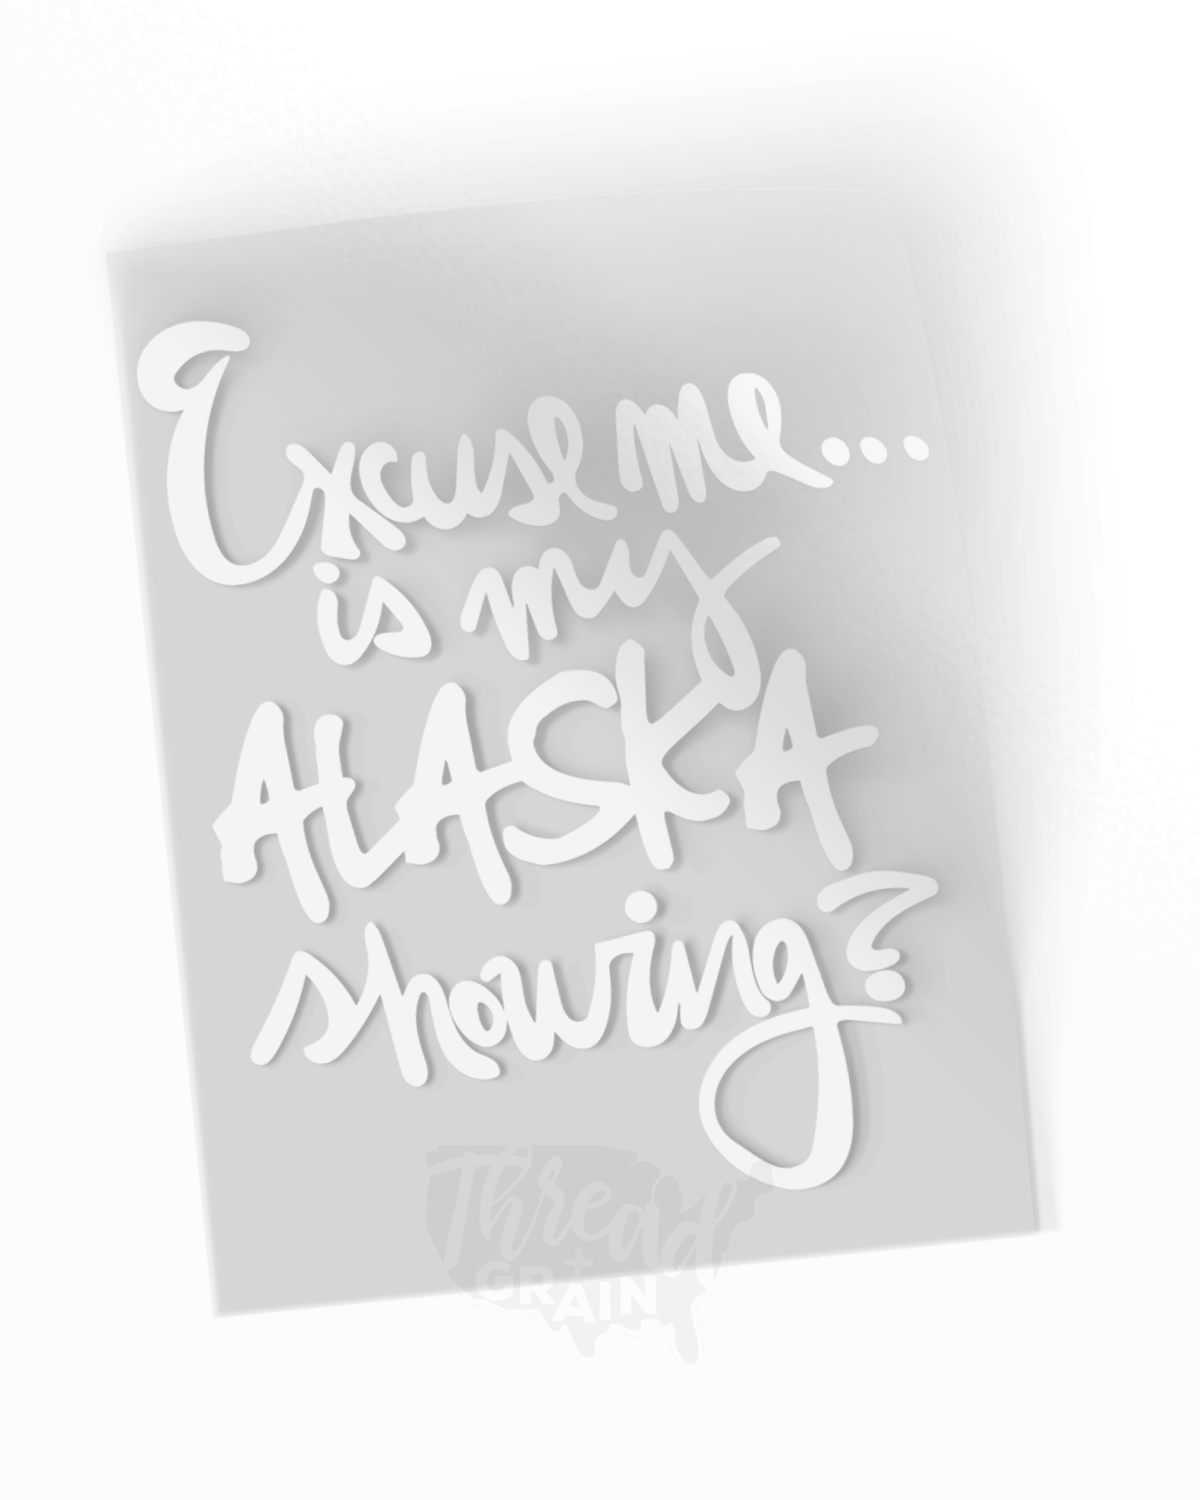 Alaska :: Is My Alaska Showing? IRON-ON TRANSFER